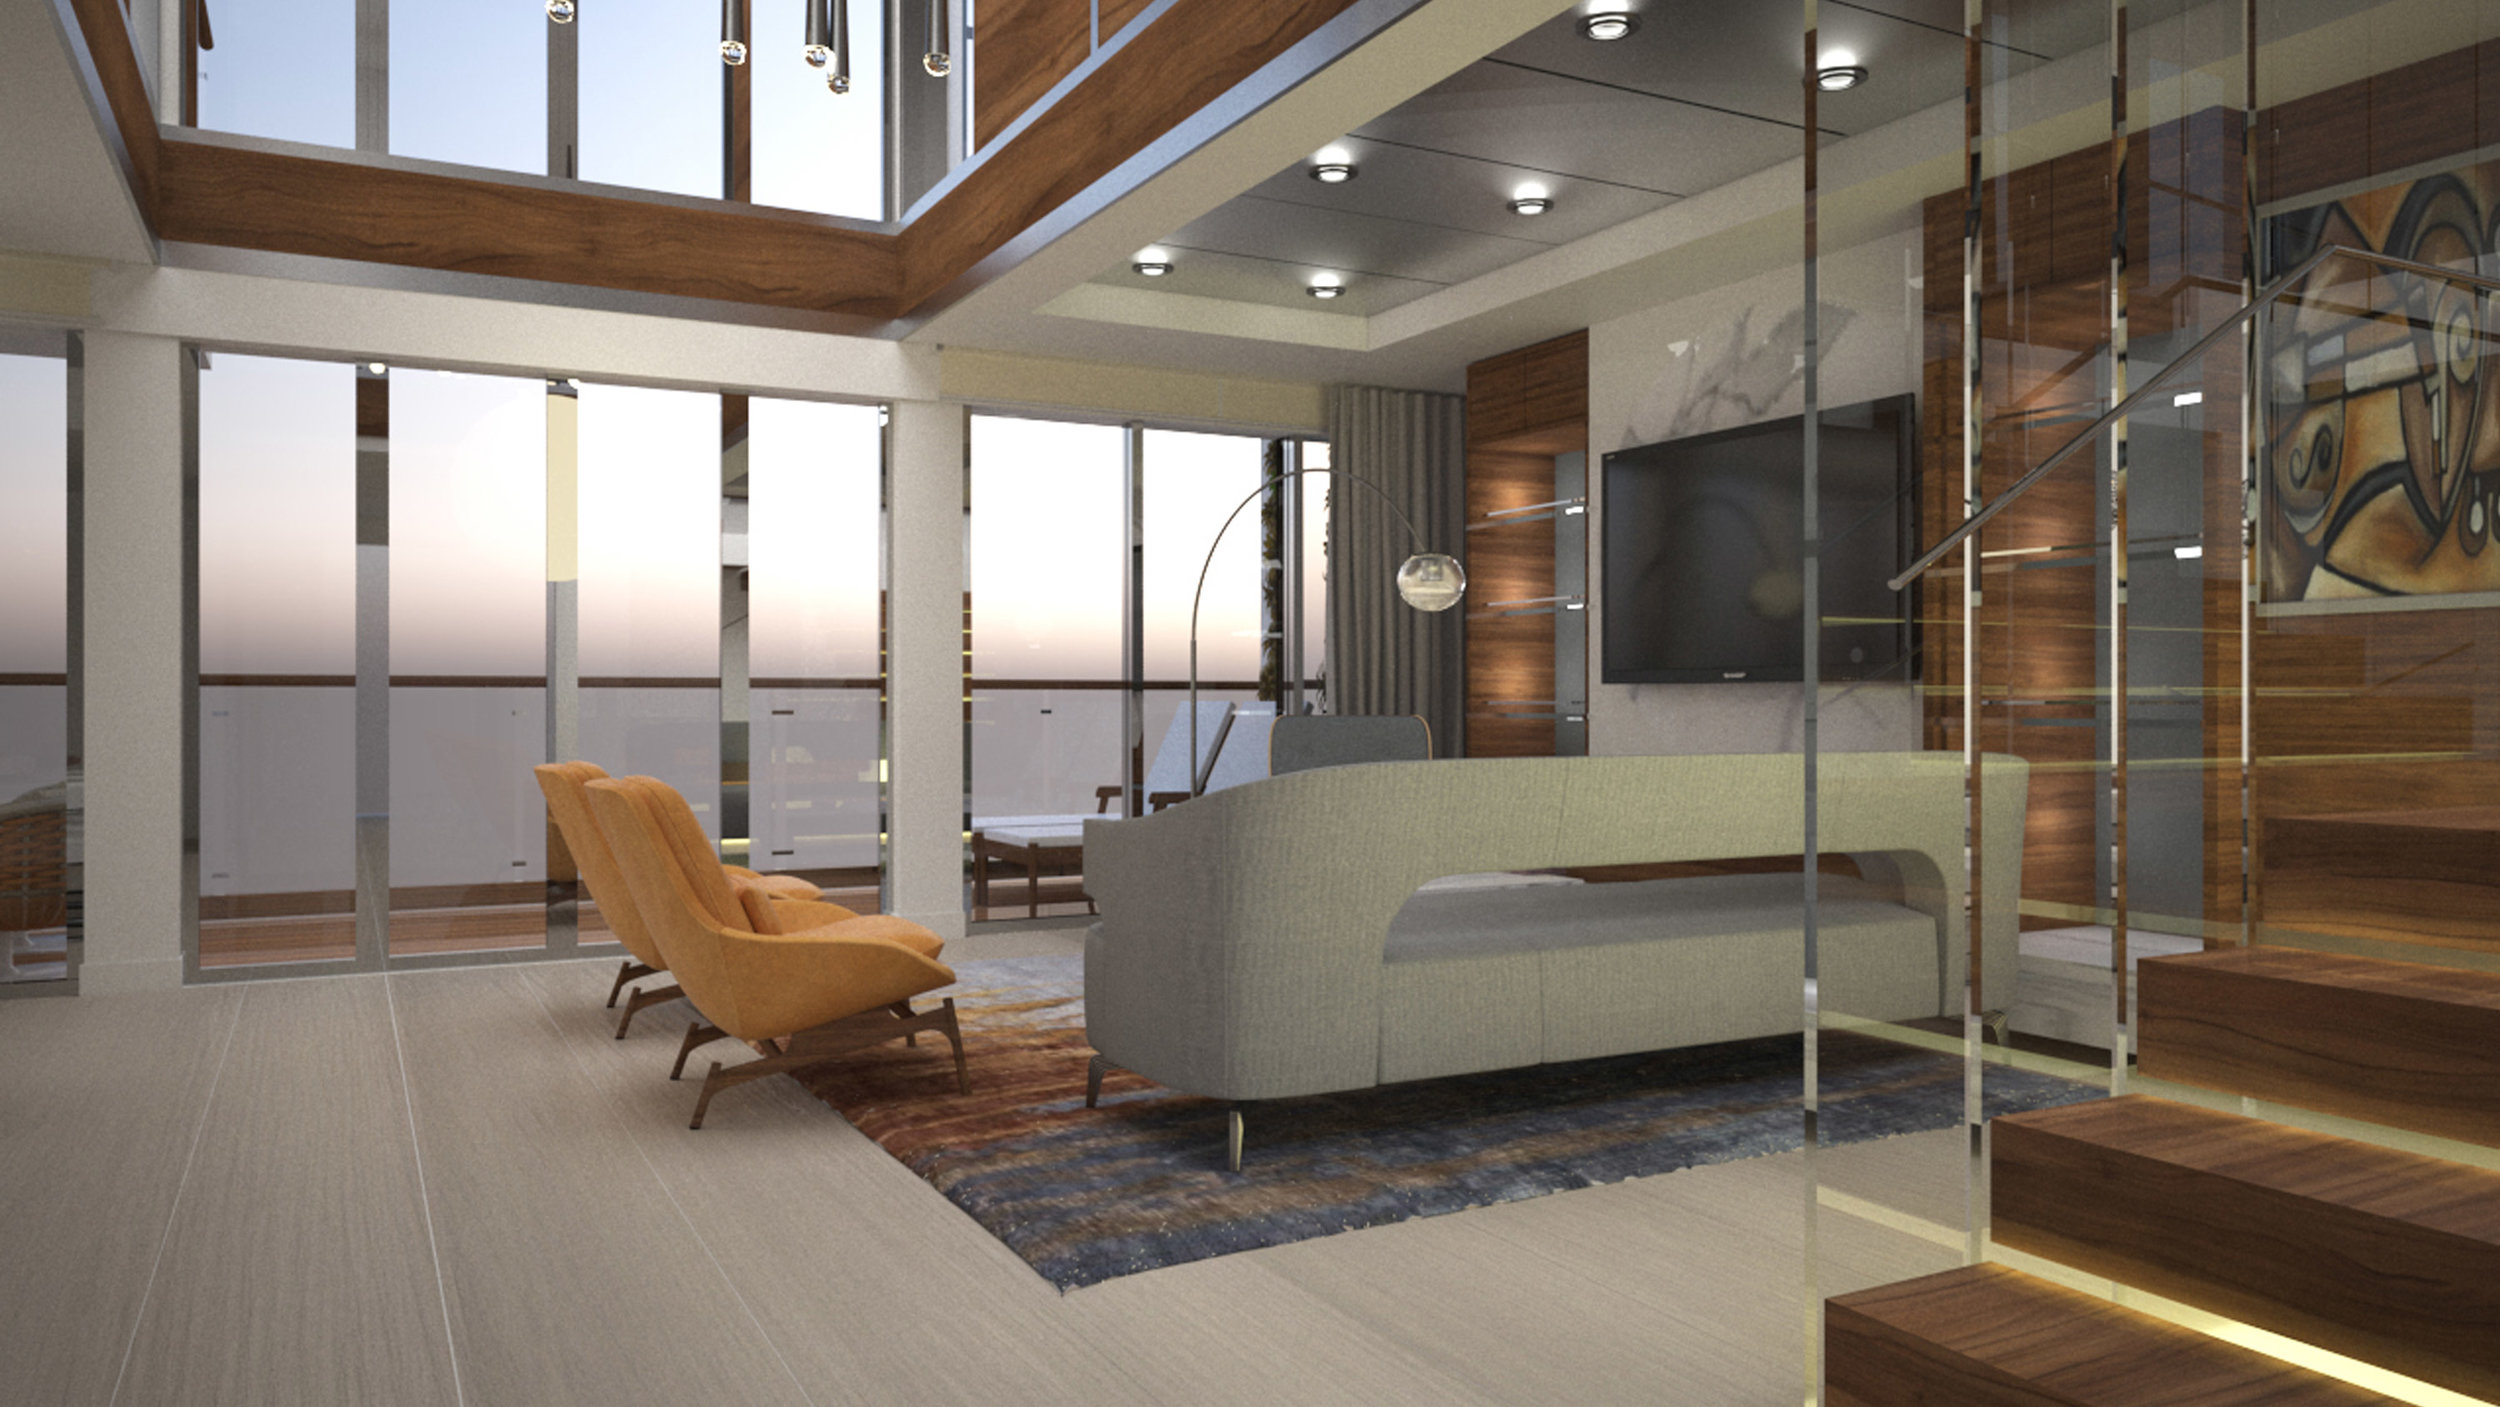 TWO BEDROOM SPLIT-LEVEL RESIDENCES - YOUR HOME AT SEA, SIZE EXTRA LARGE1,200 SQ FT / 111.5 SQMPriced from U.S. $3,350,000 (£2,557,000)